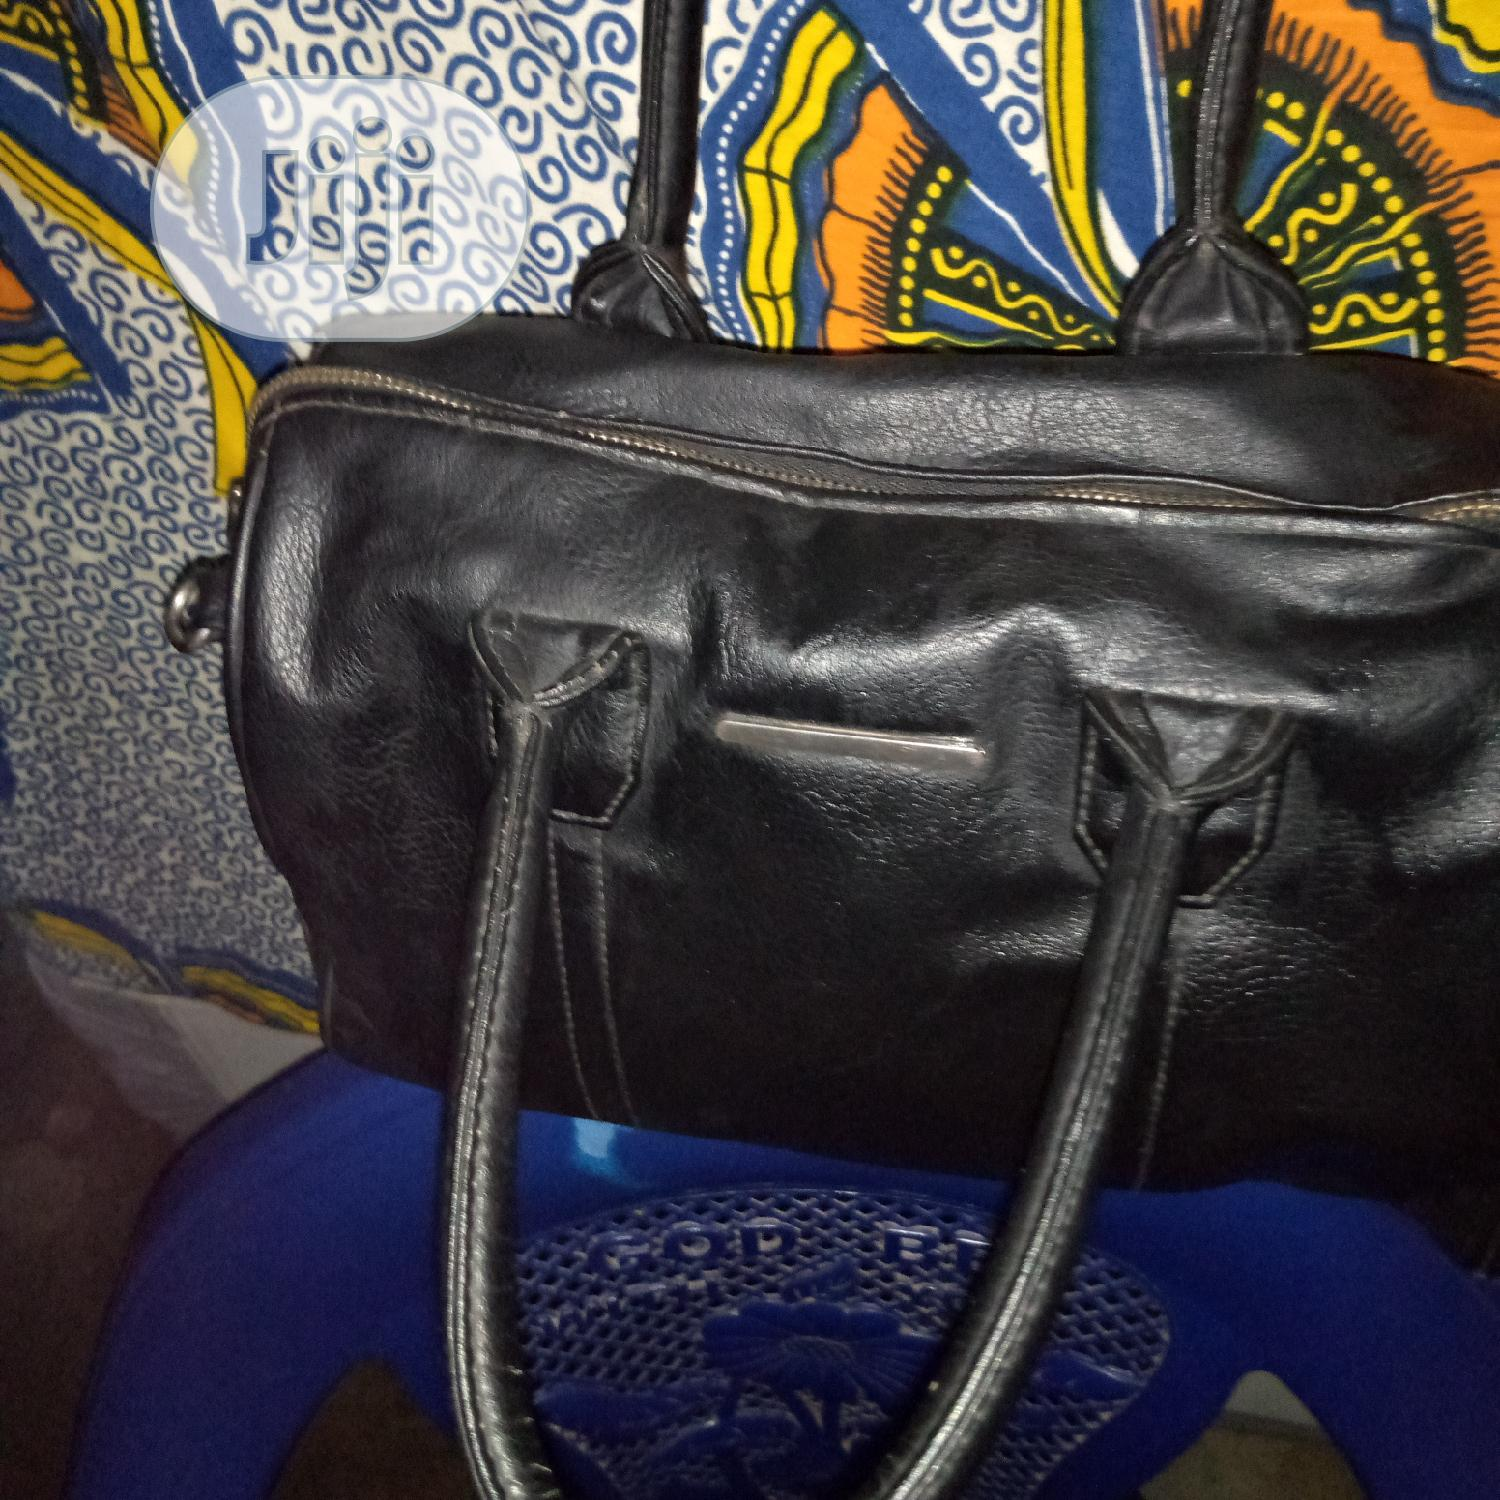 Pure Leather Hand Bag   Bags for sale in Benin City, Edo State, Nigeria